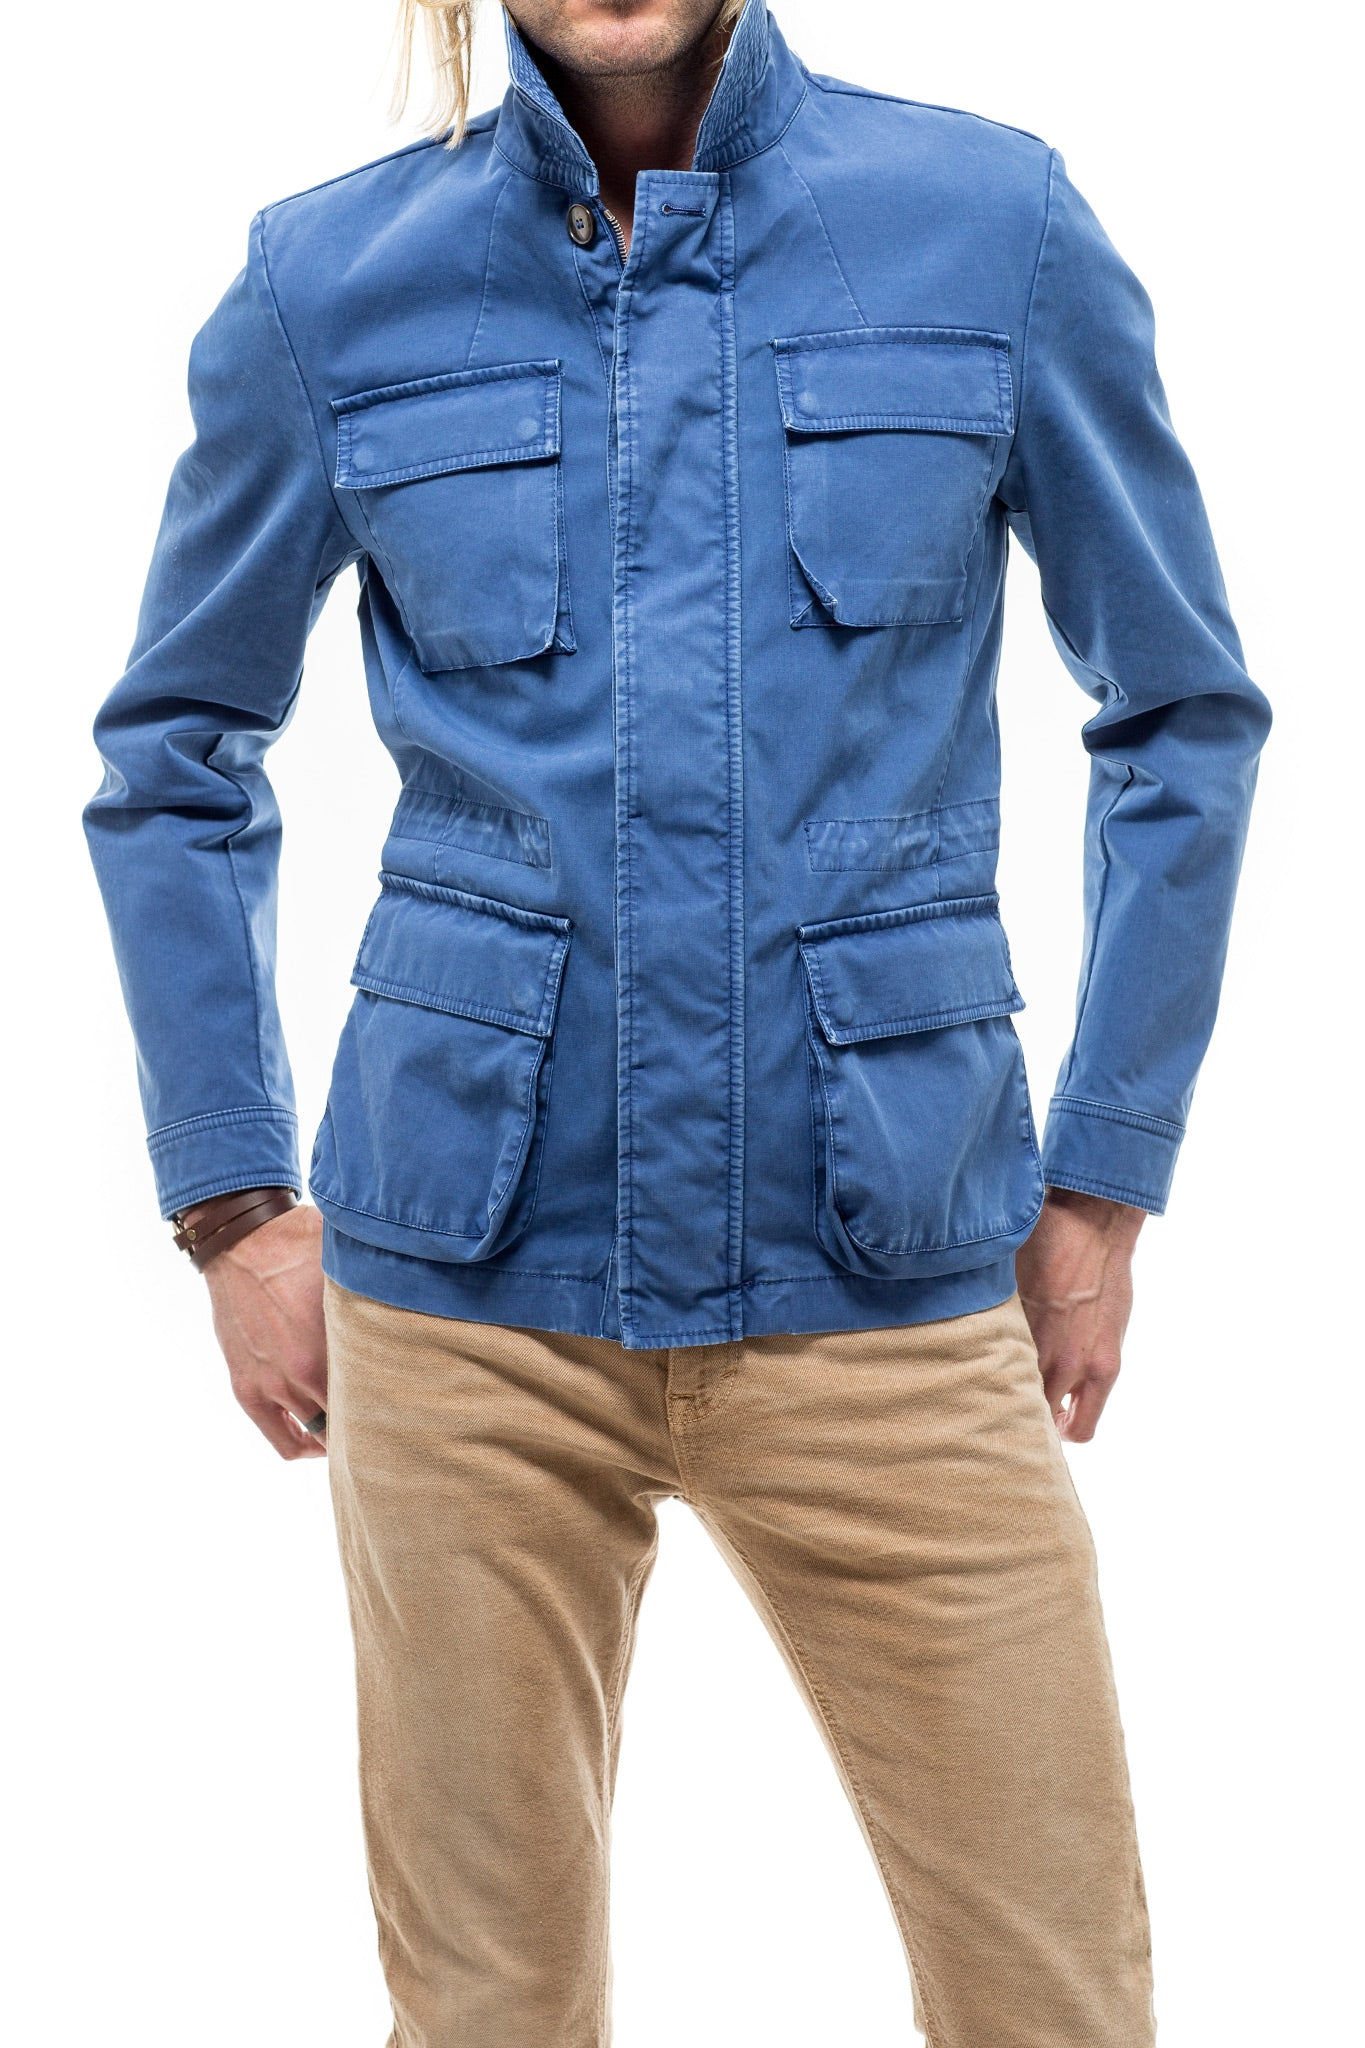 Axel's Ombra Outerwear Jacket In Blue (3765013119069)